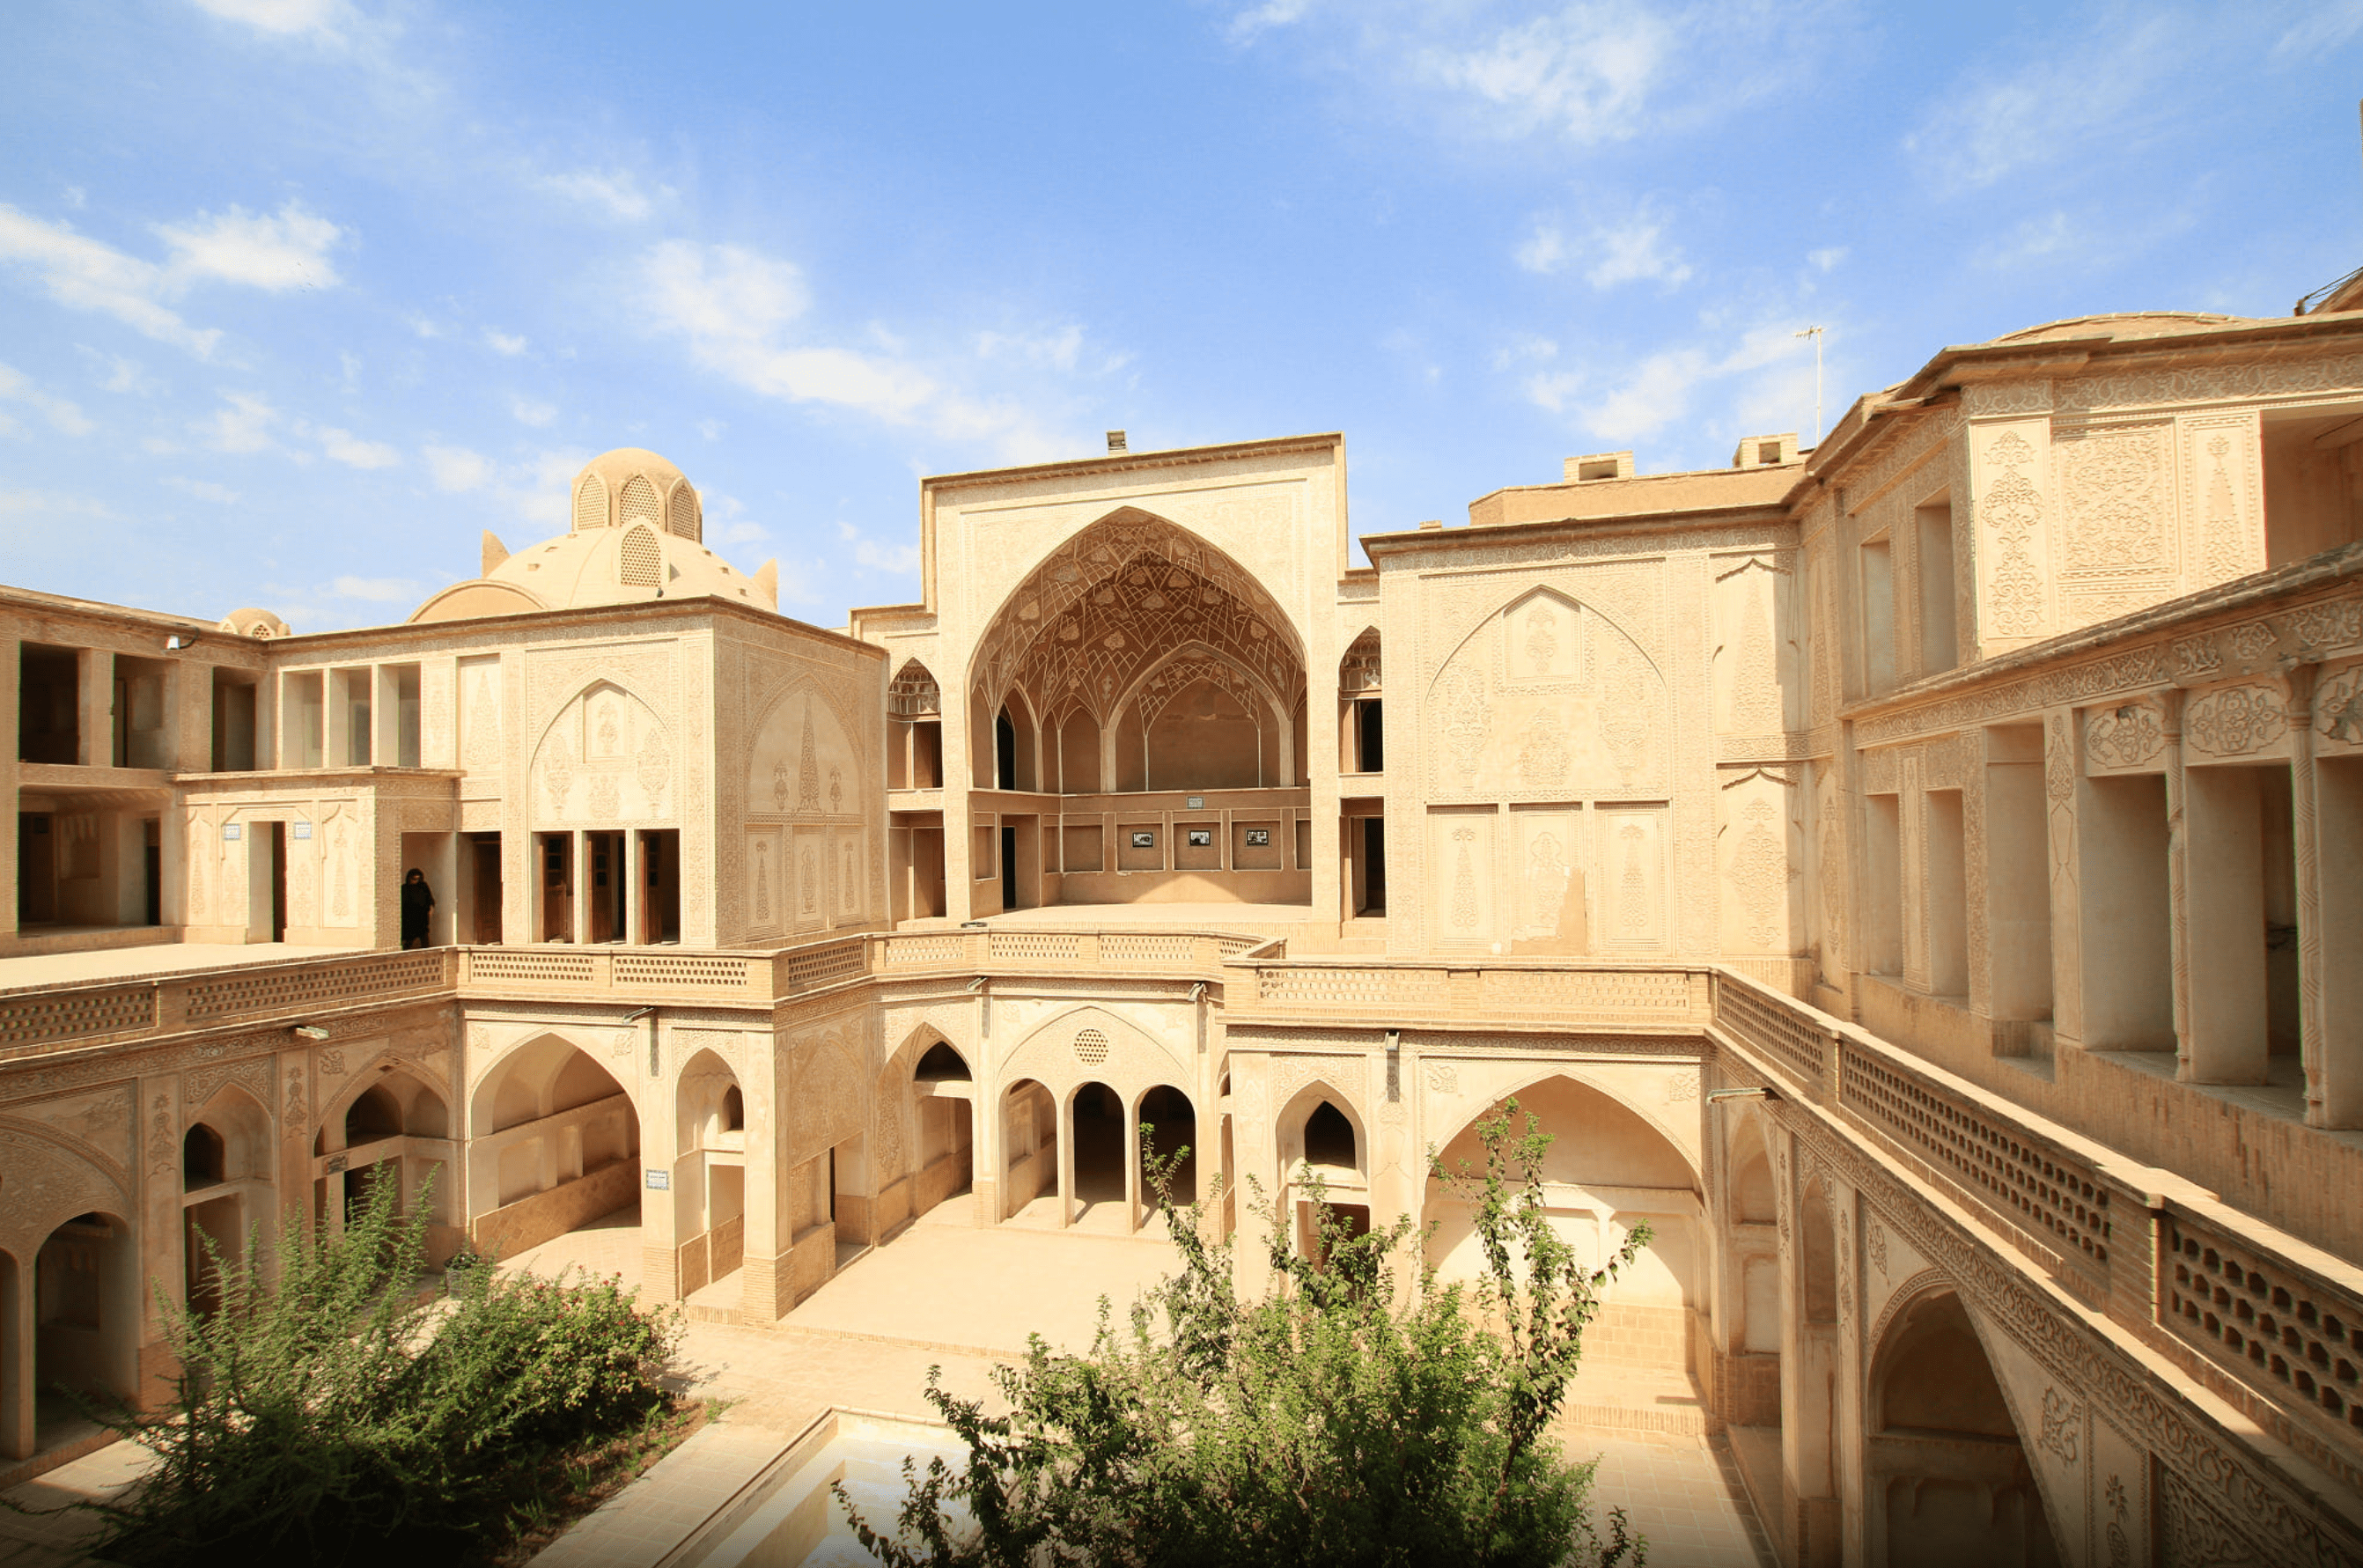 Abassian house of Kashan